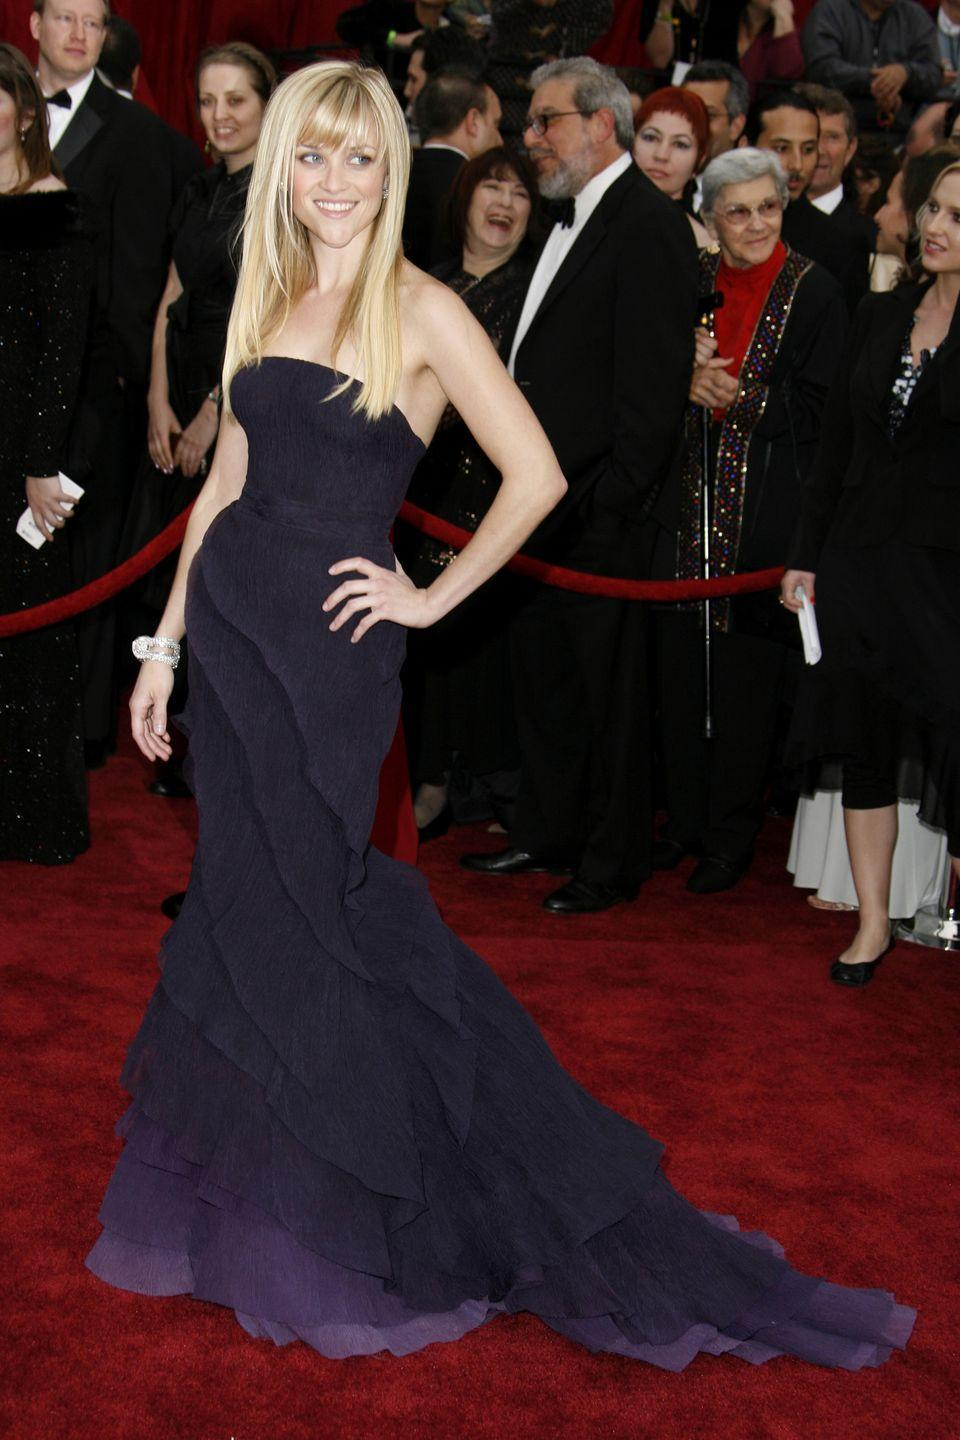 <p>Witherspoon flexed her sartorial power in this Nina Ricci gown at the 2007 Oscars</p>